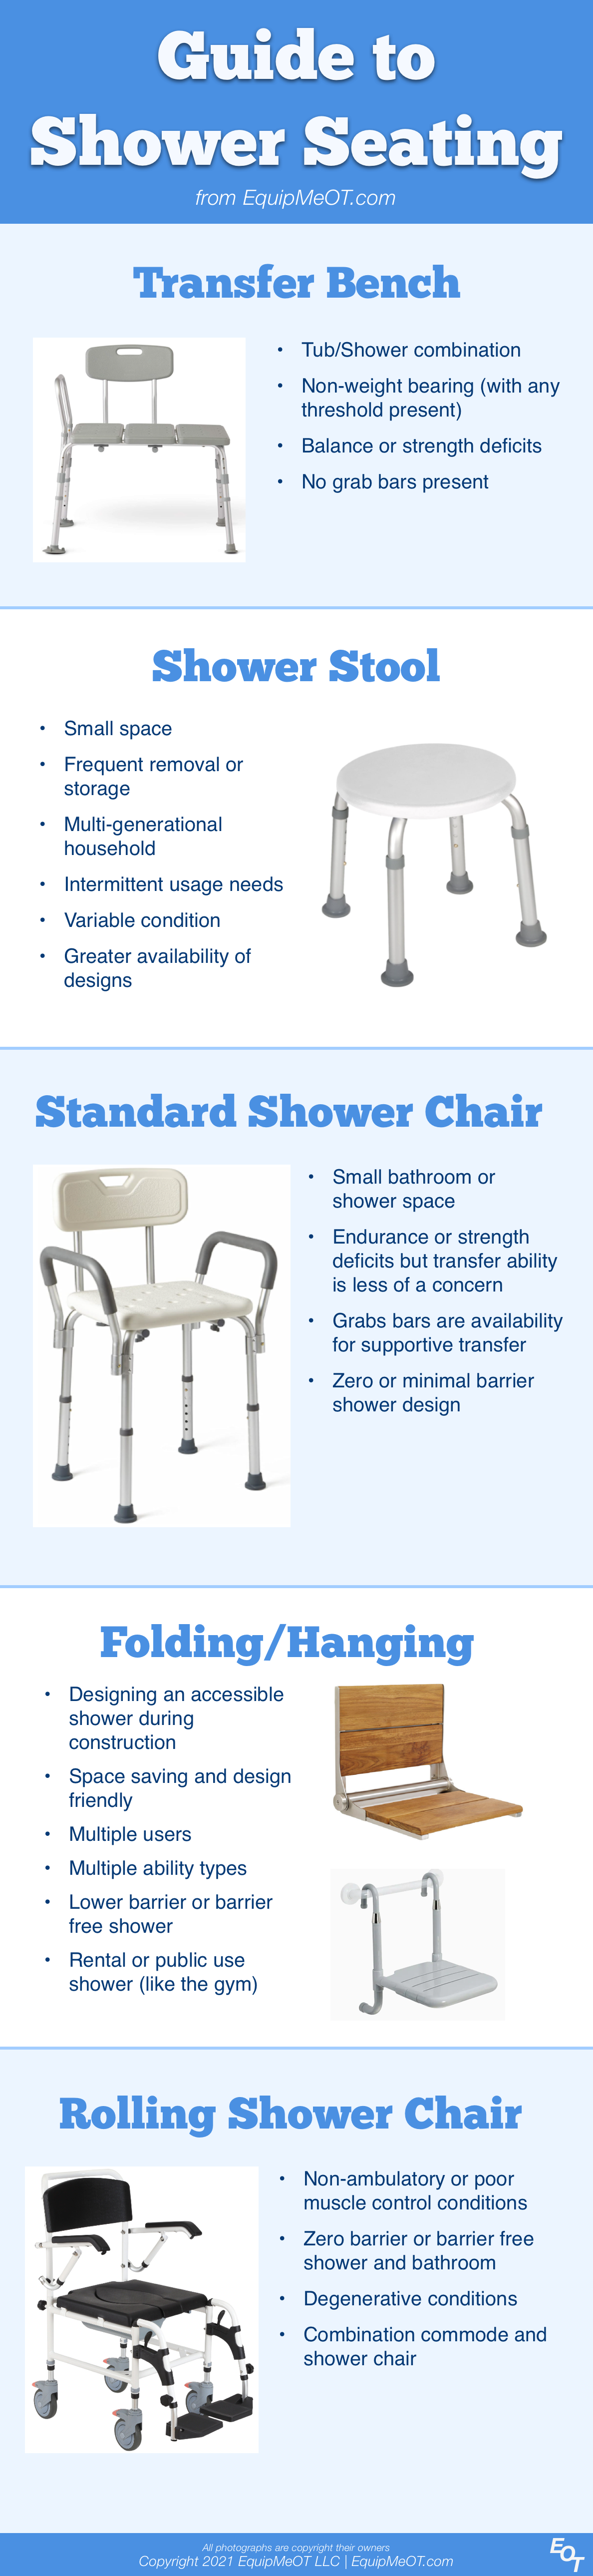 The Complete Guide to Shower Seating